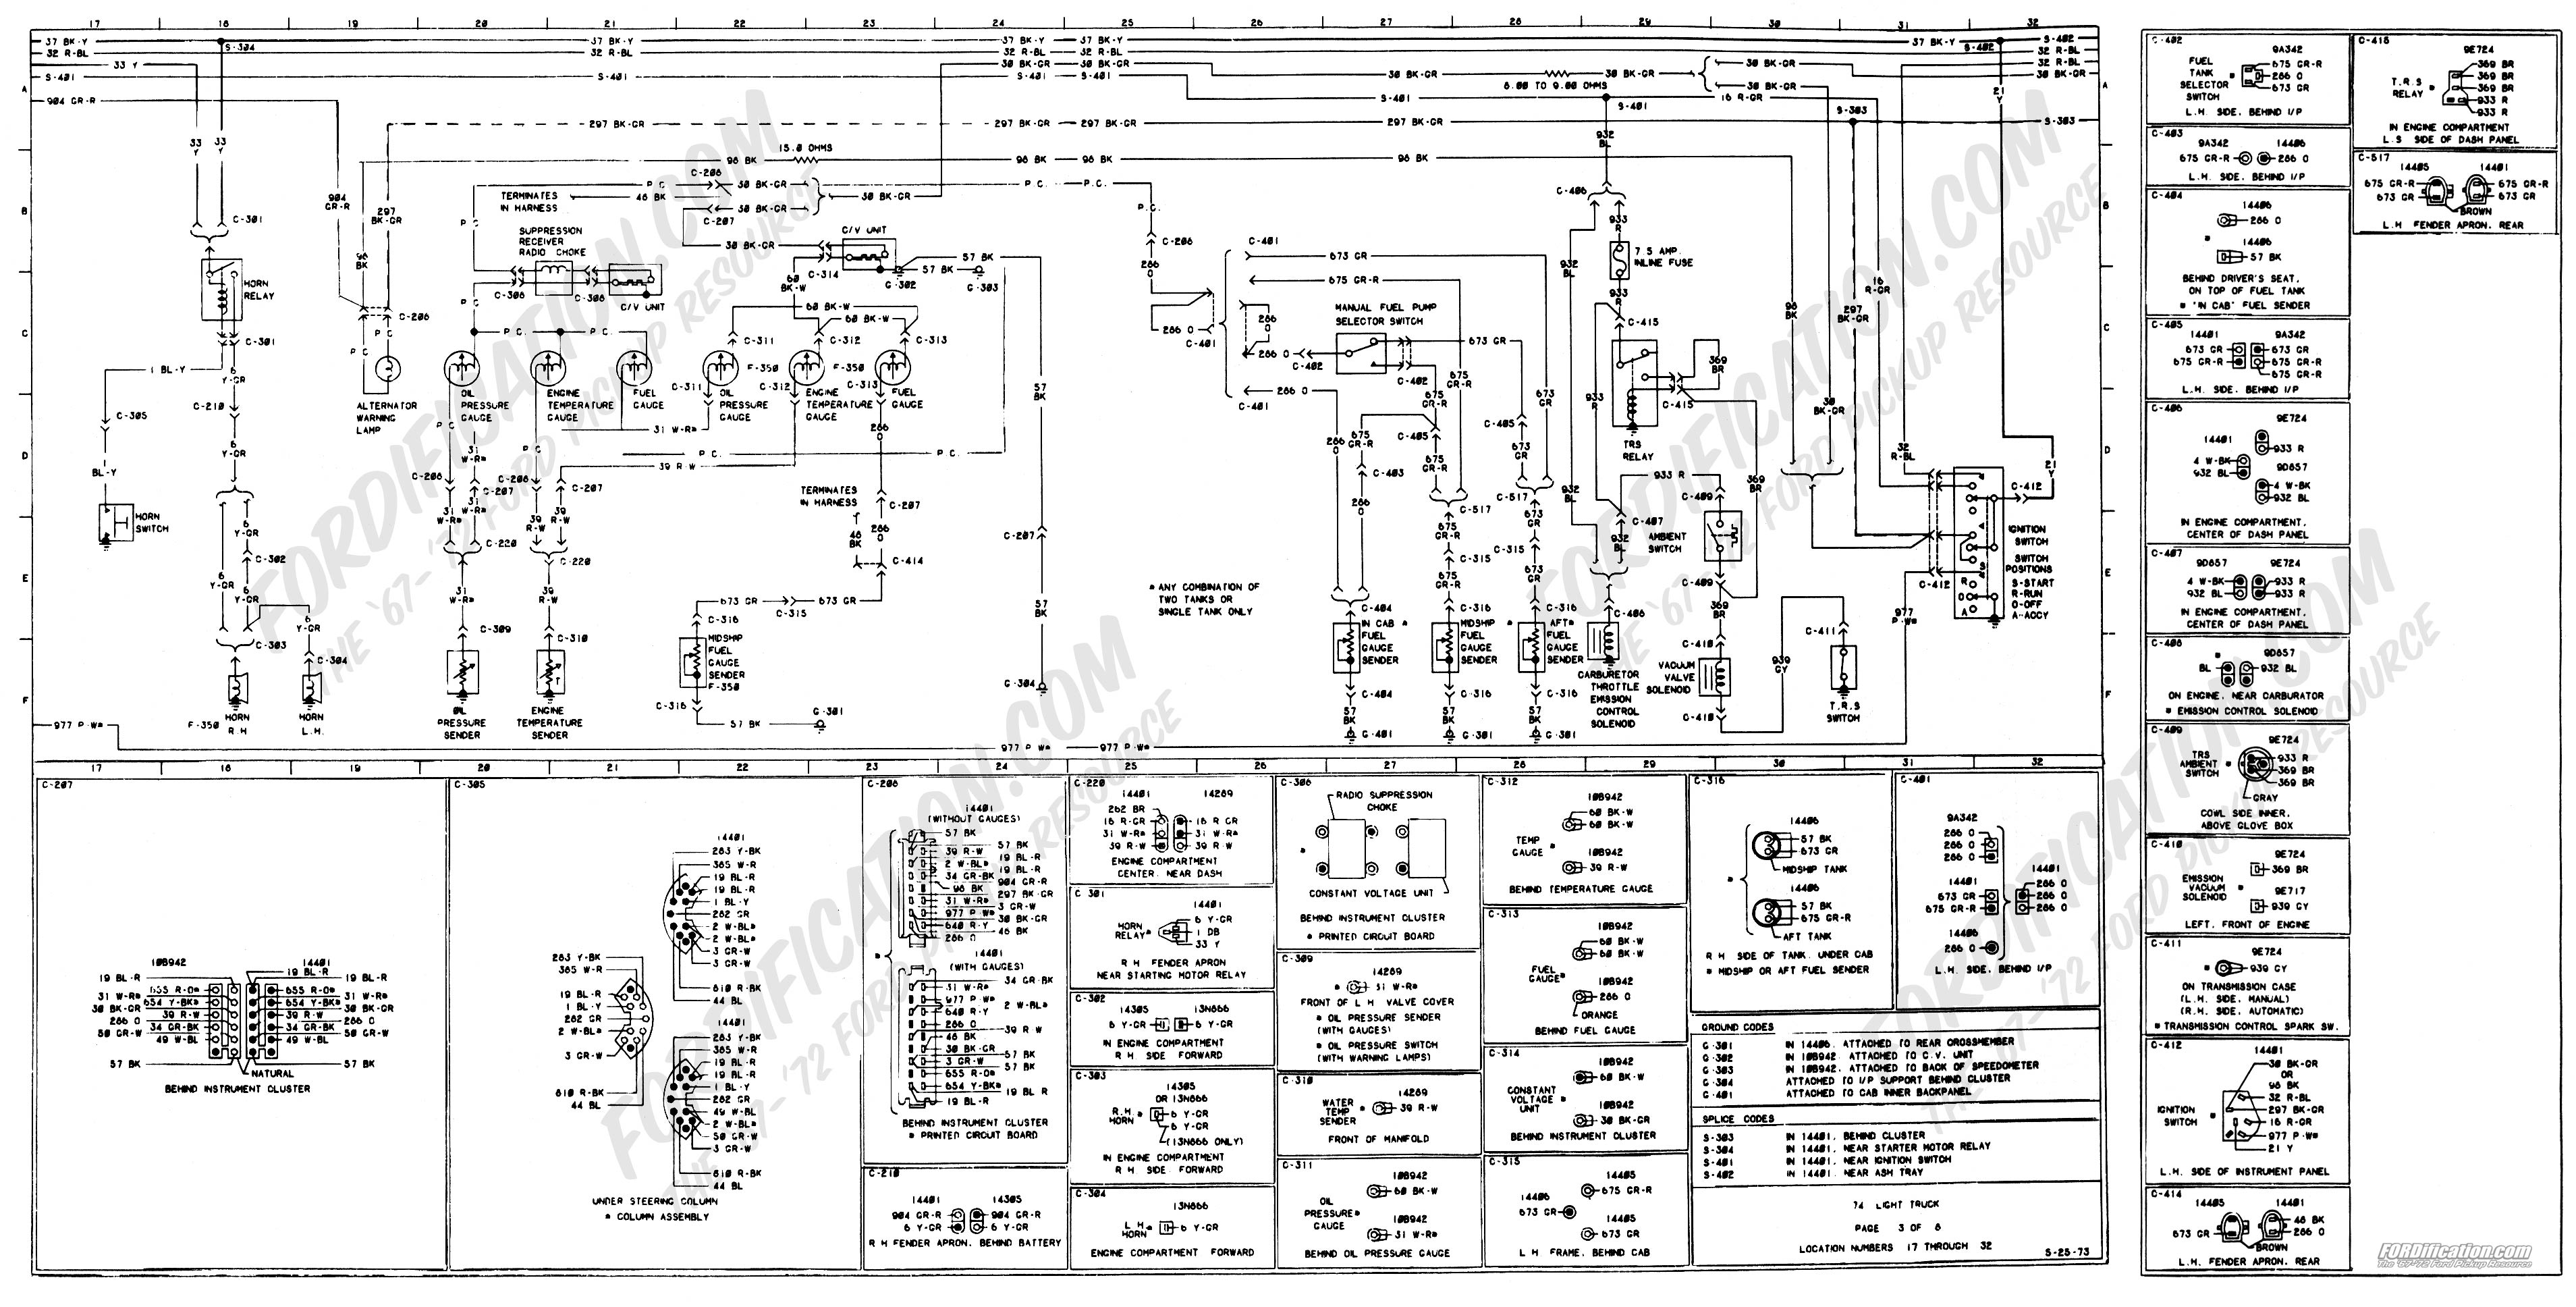 ford f350 wiring diagram 2004 ford f350 wiring diagram 2004 discover your wiring diagram ford 29 v6 wiring diagram ford